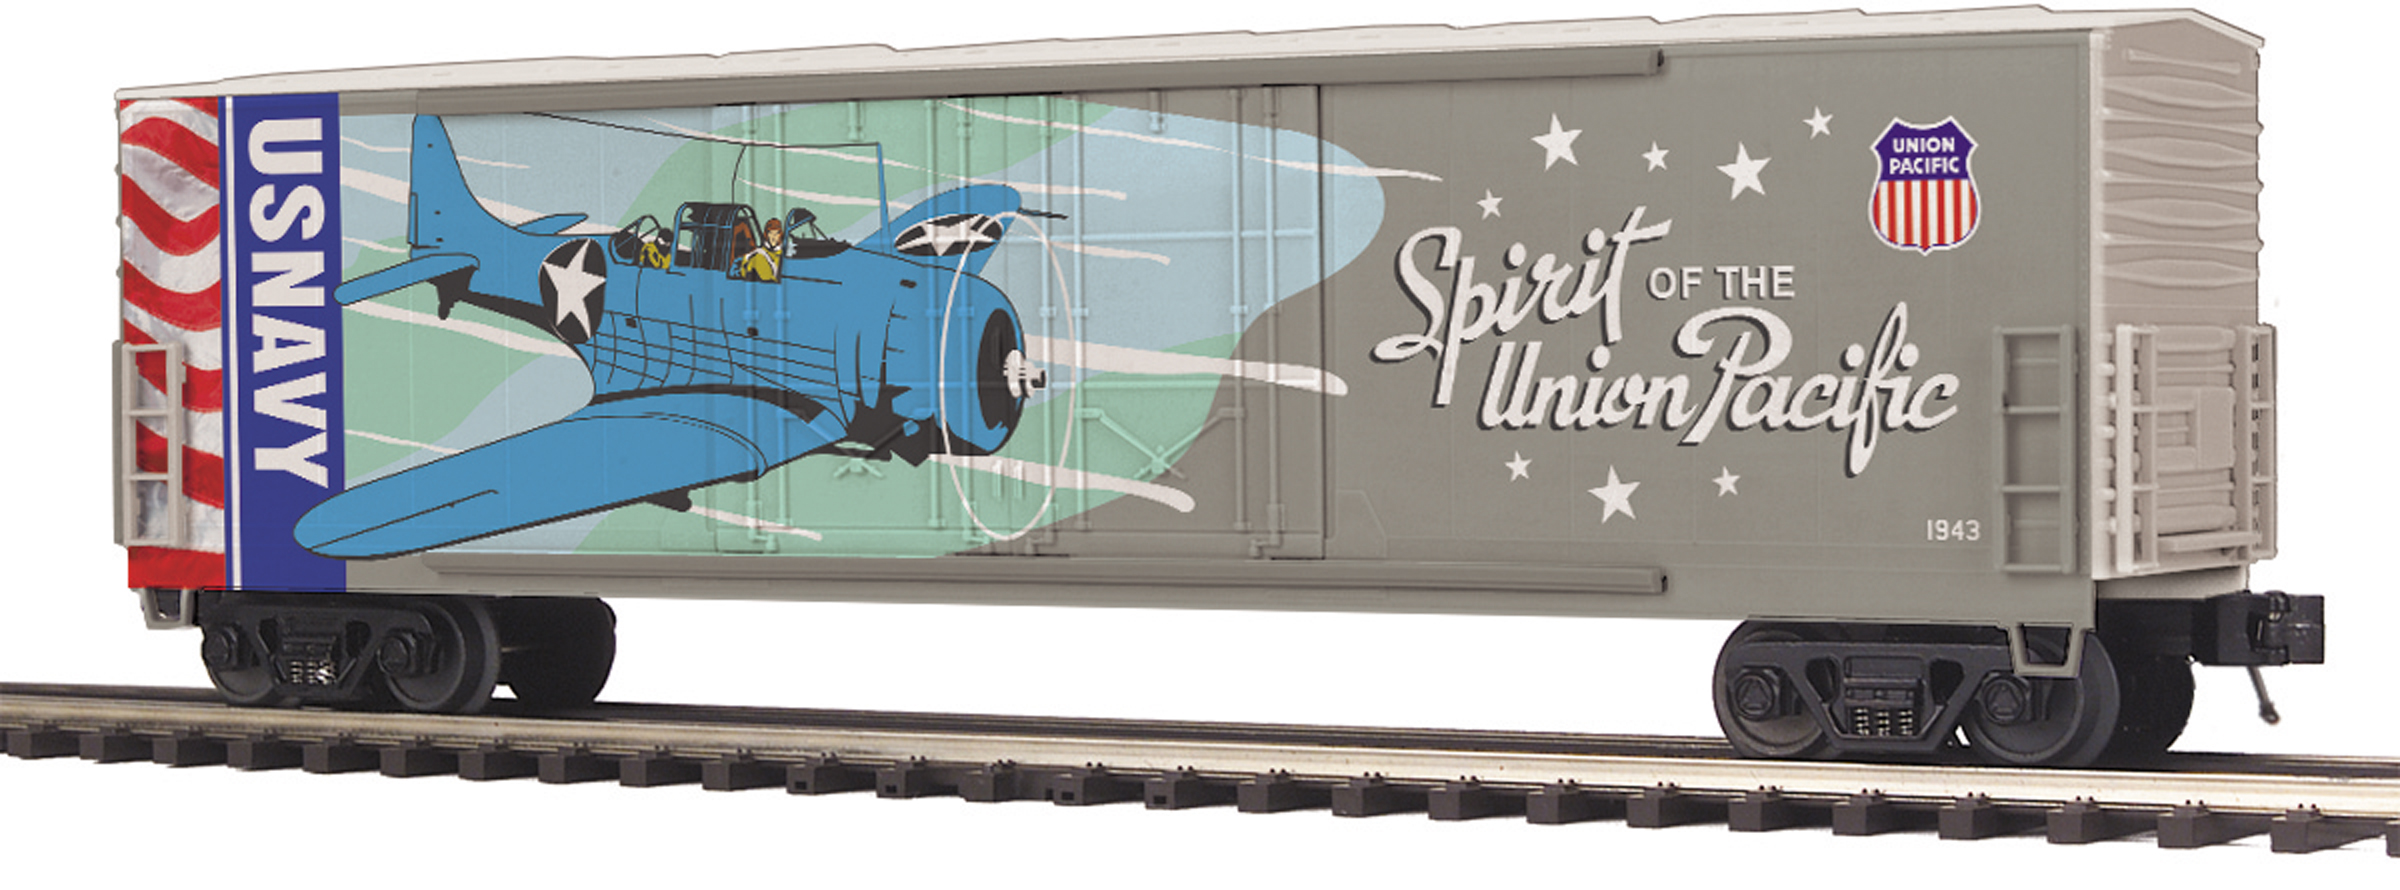 MTH 2093754 O 50' Double-Plug-Door Boxcar 3-Rail RTR Premier Union Pacific Navy Commemorative 507-2093754